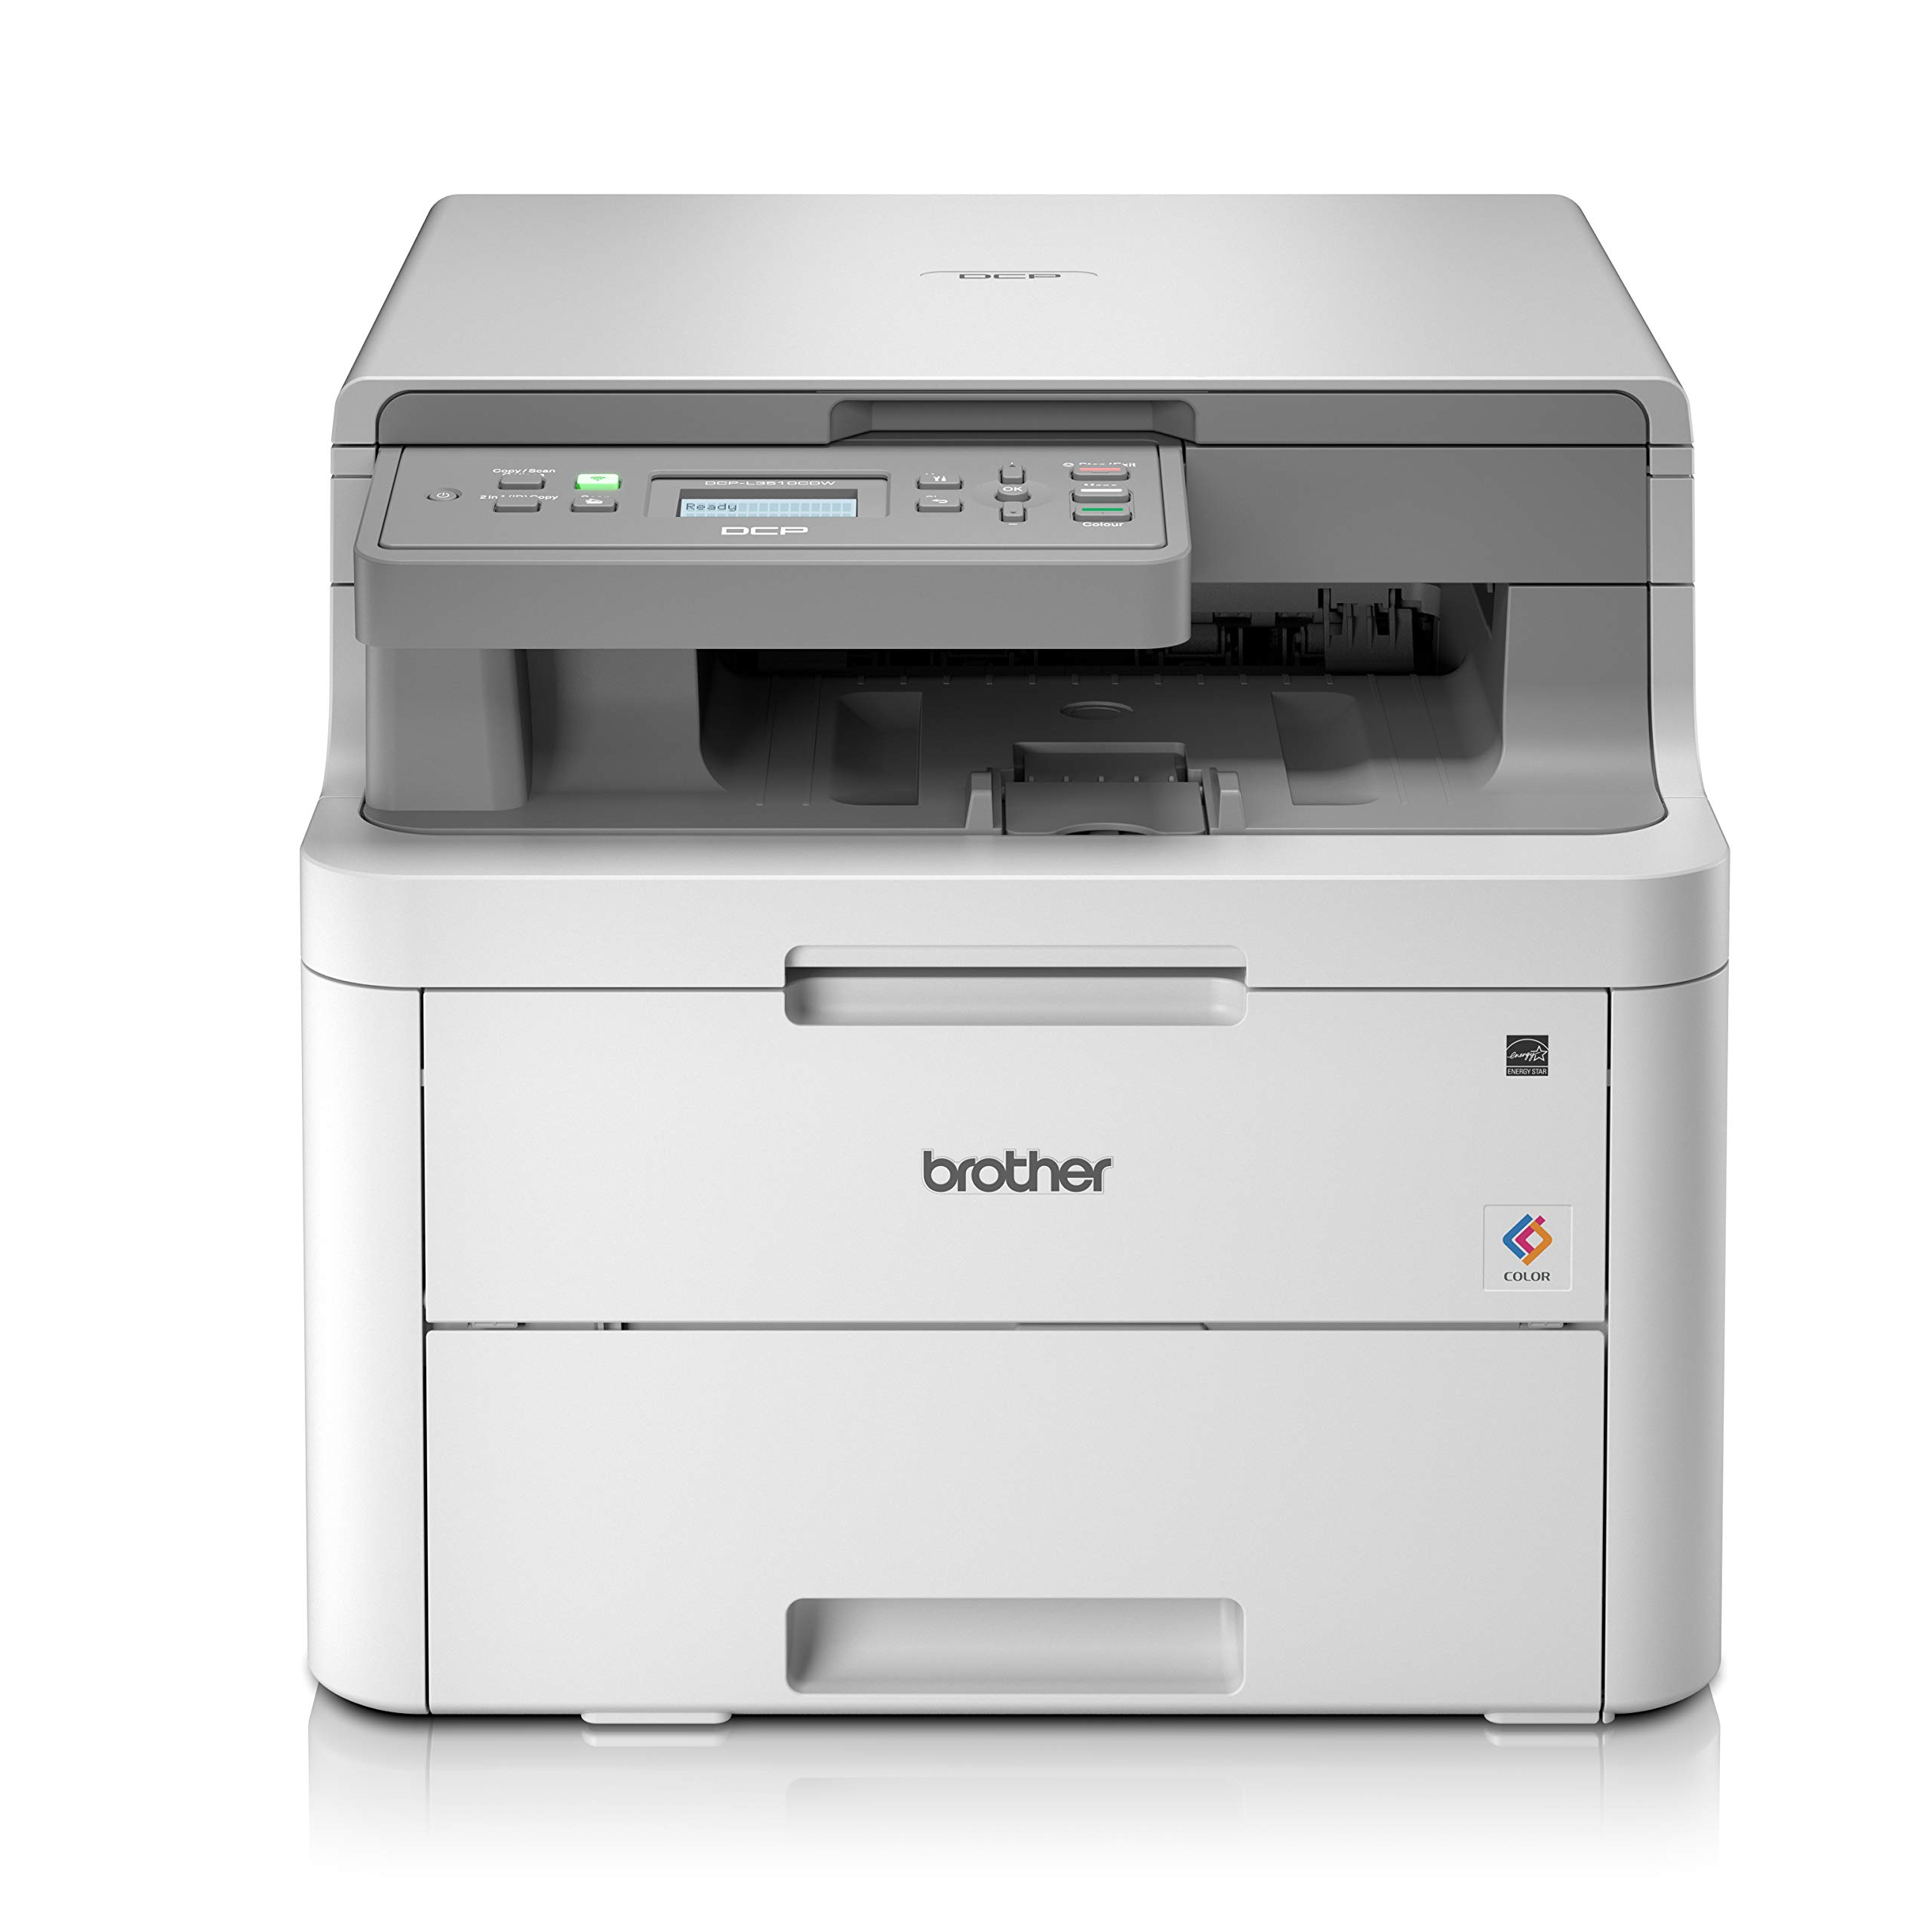 Brother Dcp L3510cdw Colour Laser Printer All In One Wireless Usb 2 0 Printer Scanner Copier 2 Sided Printing A4 Printer Small Office Home Office Printer Amazon Co Uk Computers Accessories